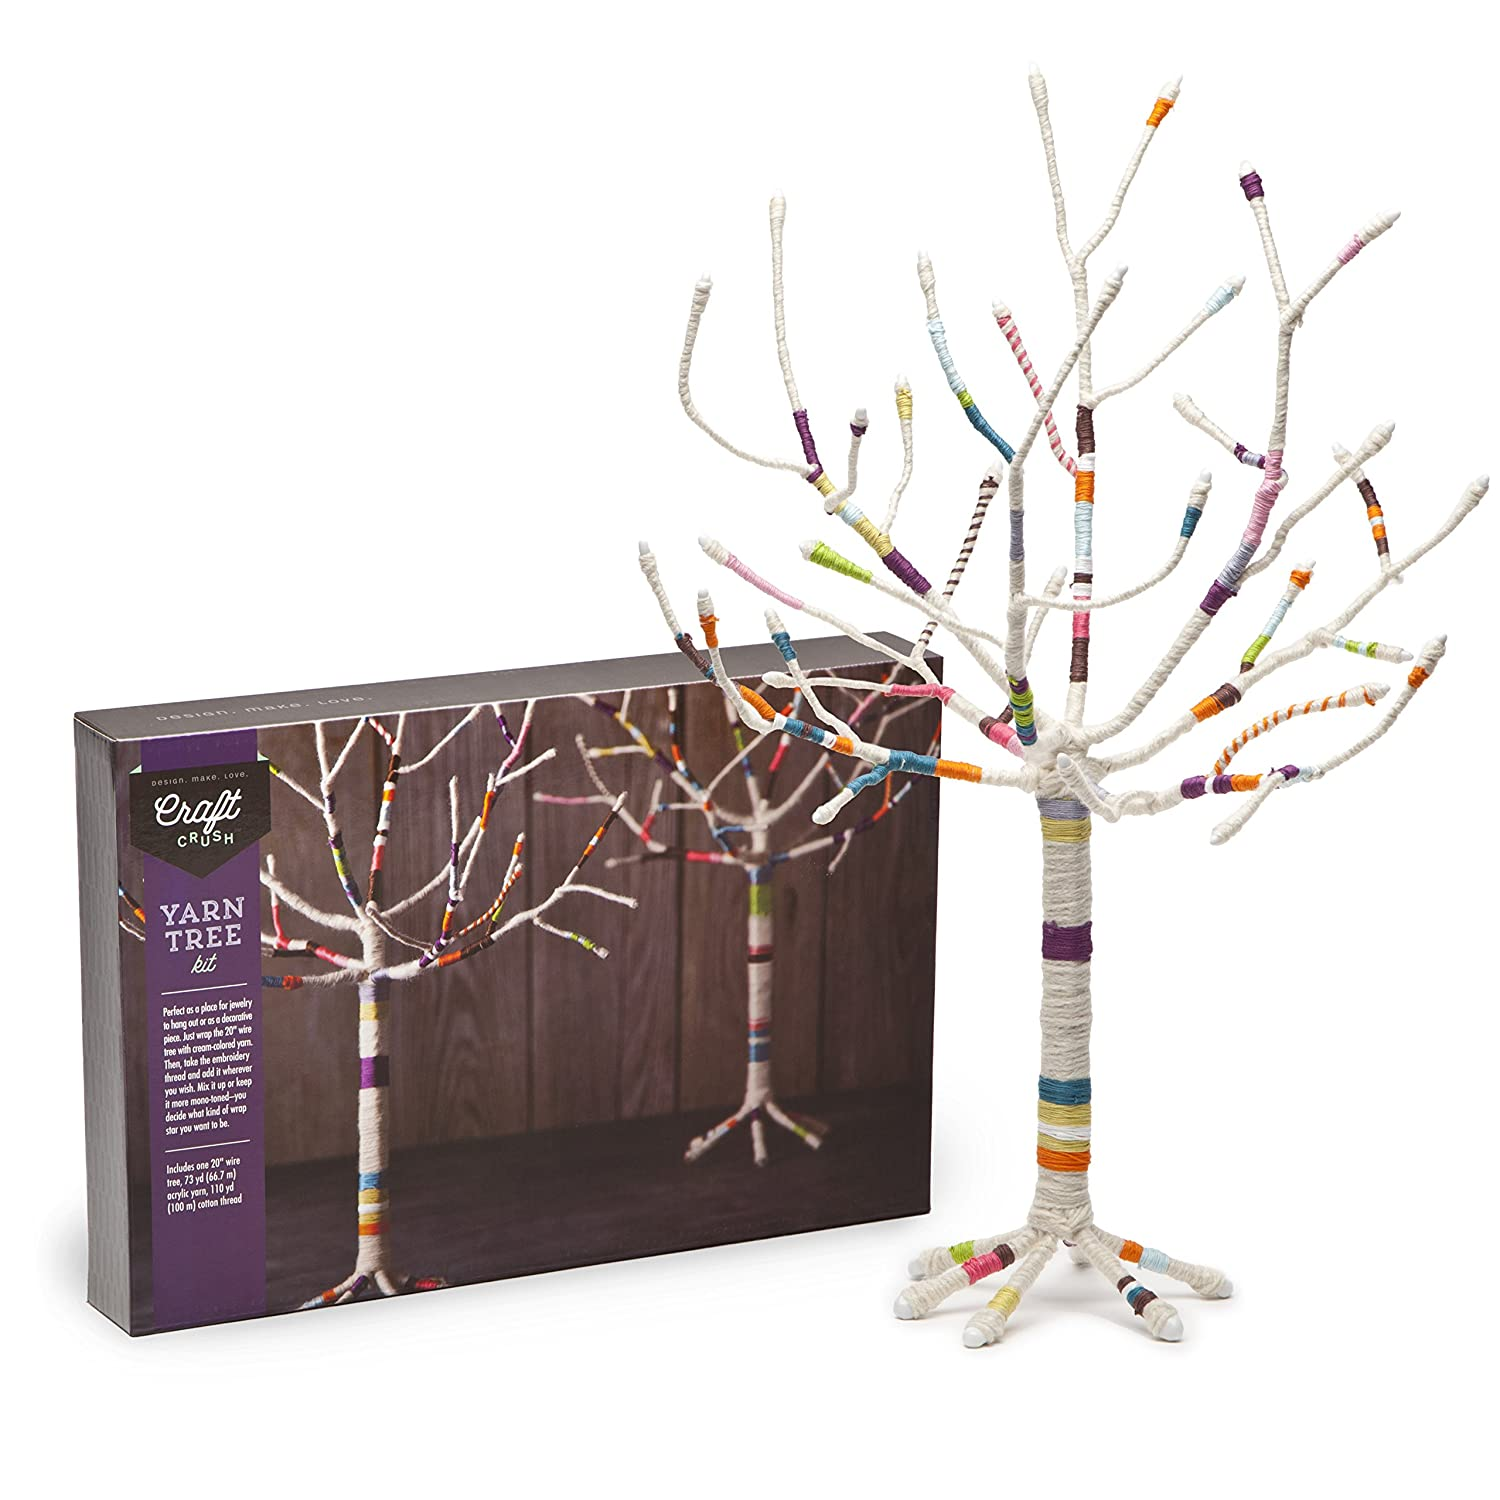 Amazon.com: Craft Crush Yarn Tree   Create A Jewelry Stand Or Home Décor  Piece   Crafting Kit For Teens U0026 Adults: Arts, Crafts U0026 Sewing